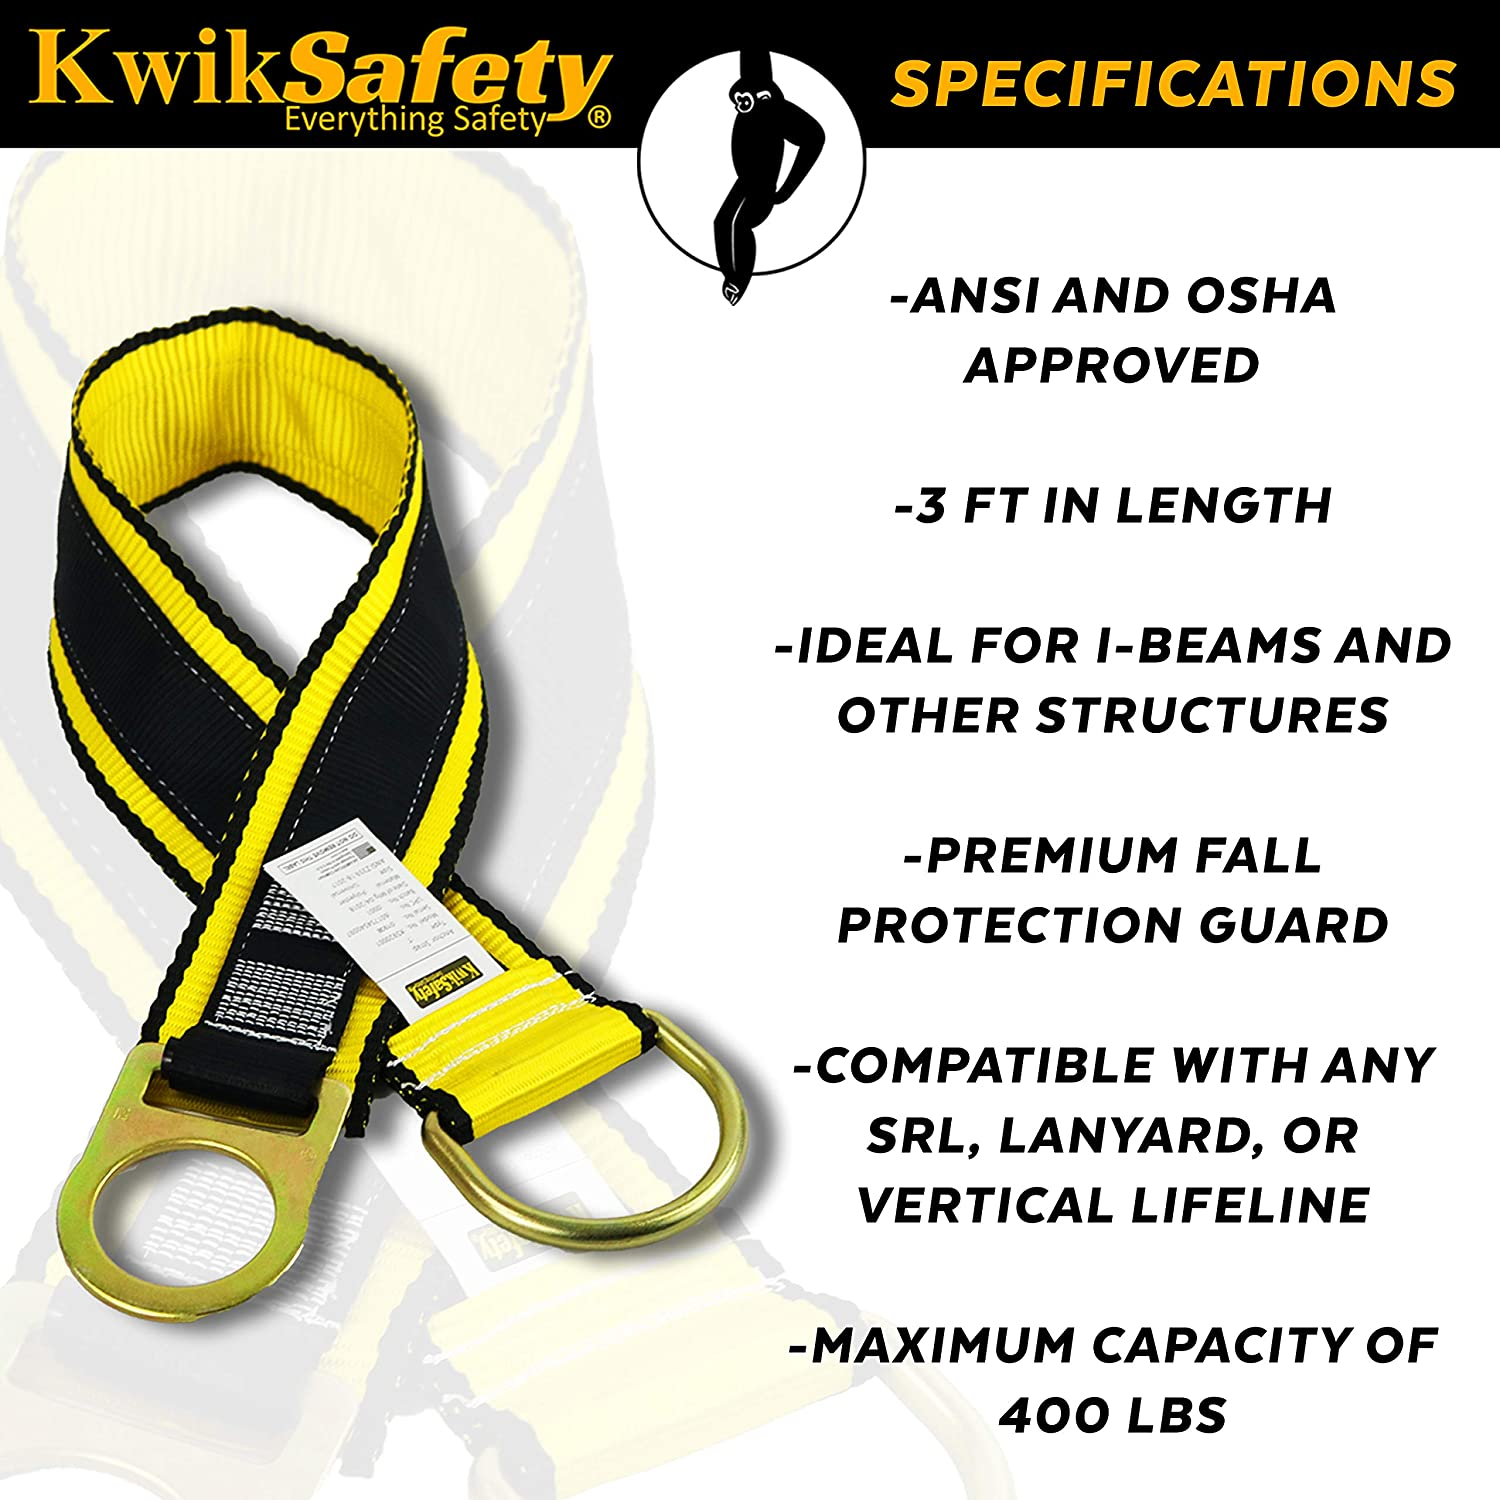 Charlotte, NC GIBBON GRIP 3 ft 6 PACK Safety Anchor Cross Arm Strap Beam Choker ANSI Fall Arrest System Web pass thru Double D Ring Anchorage Sling OSHA Protection Harness Lanyard KwikSafety